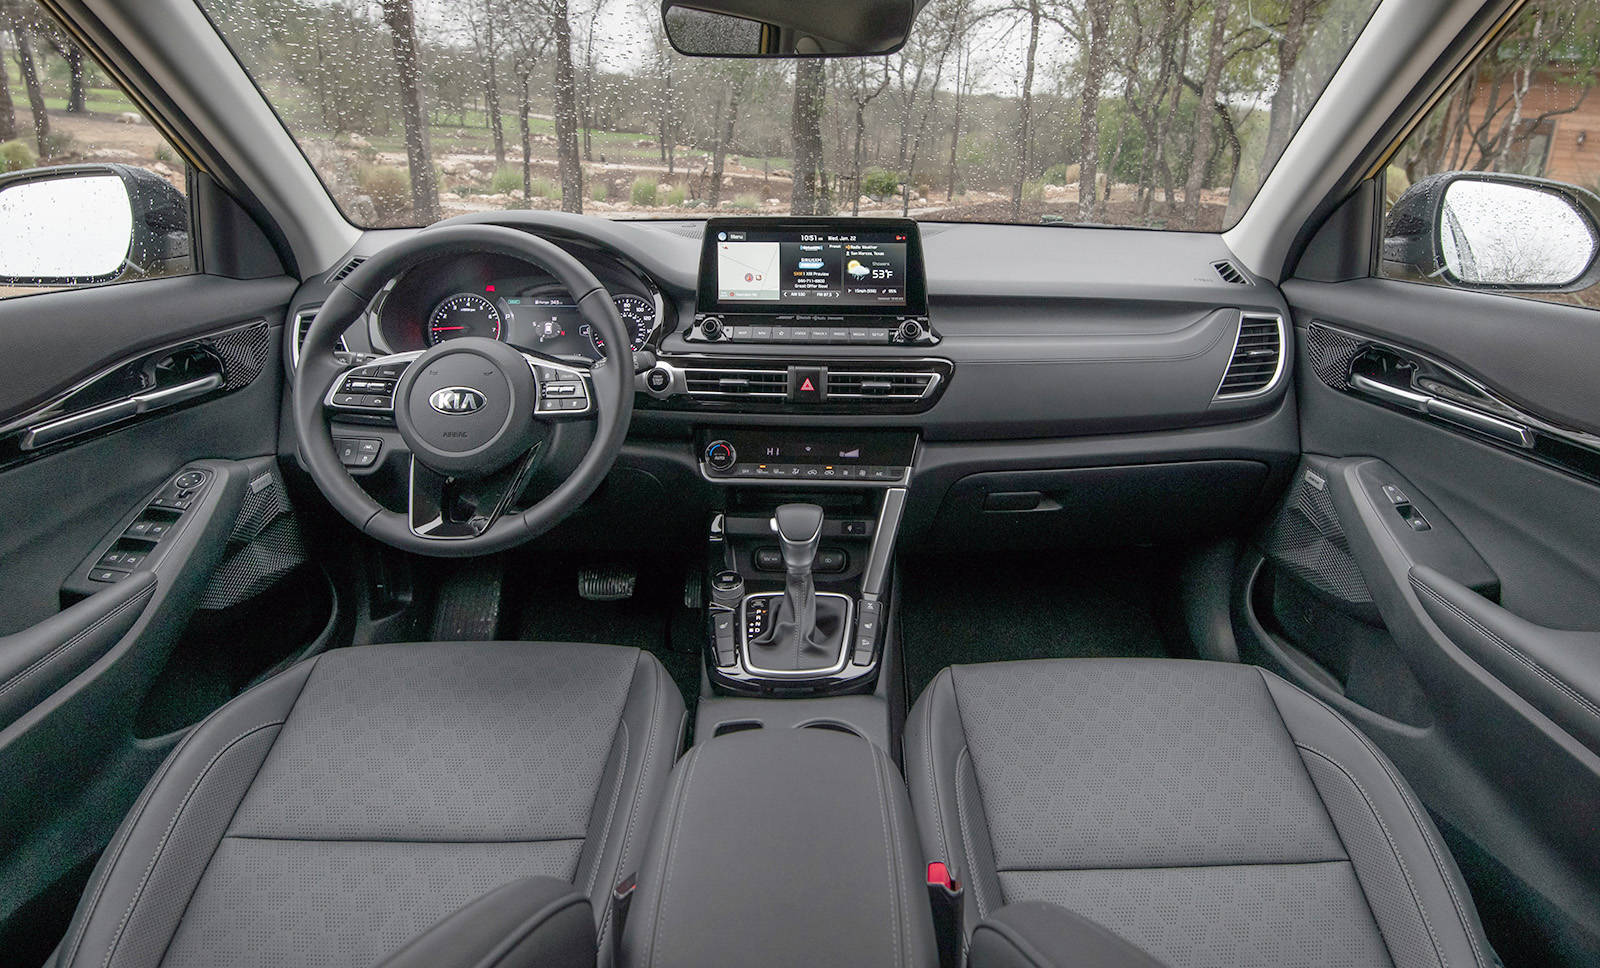 The Seltos's interior is highly detailed but not overdone. OK, the optional Bose audio package with flashing lights might be overdoing it a bit. PHOTO: KIA